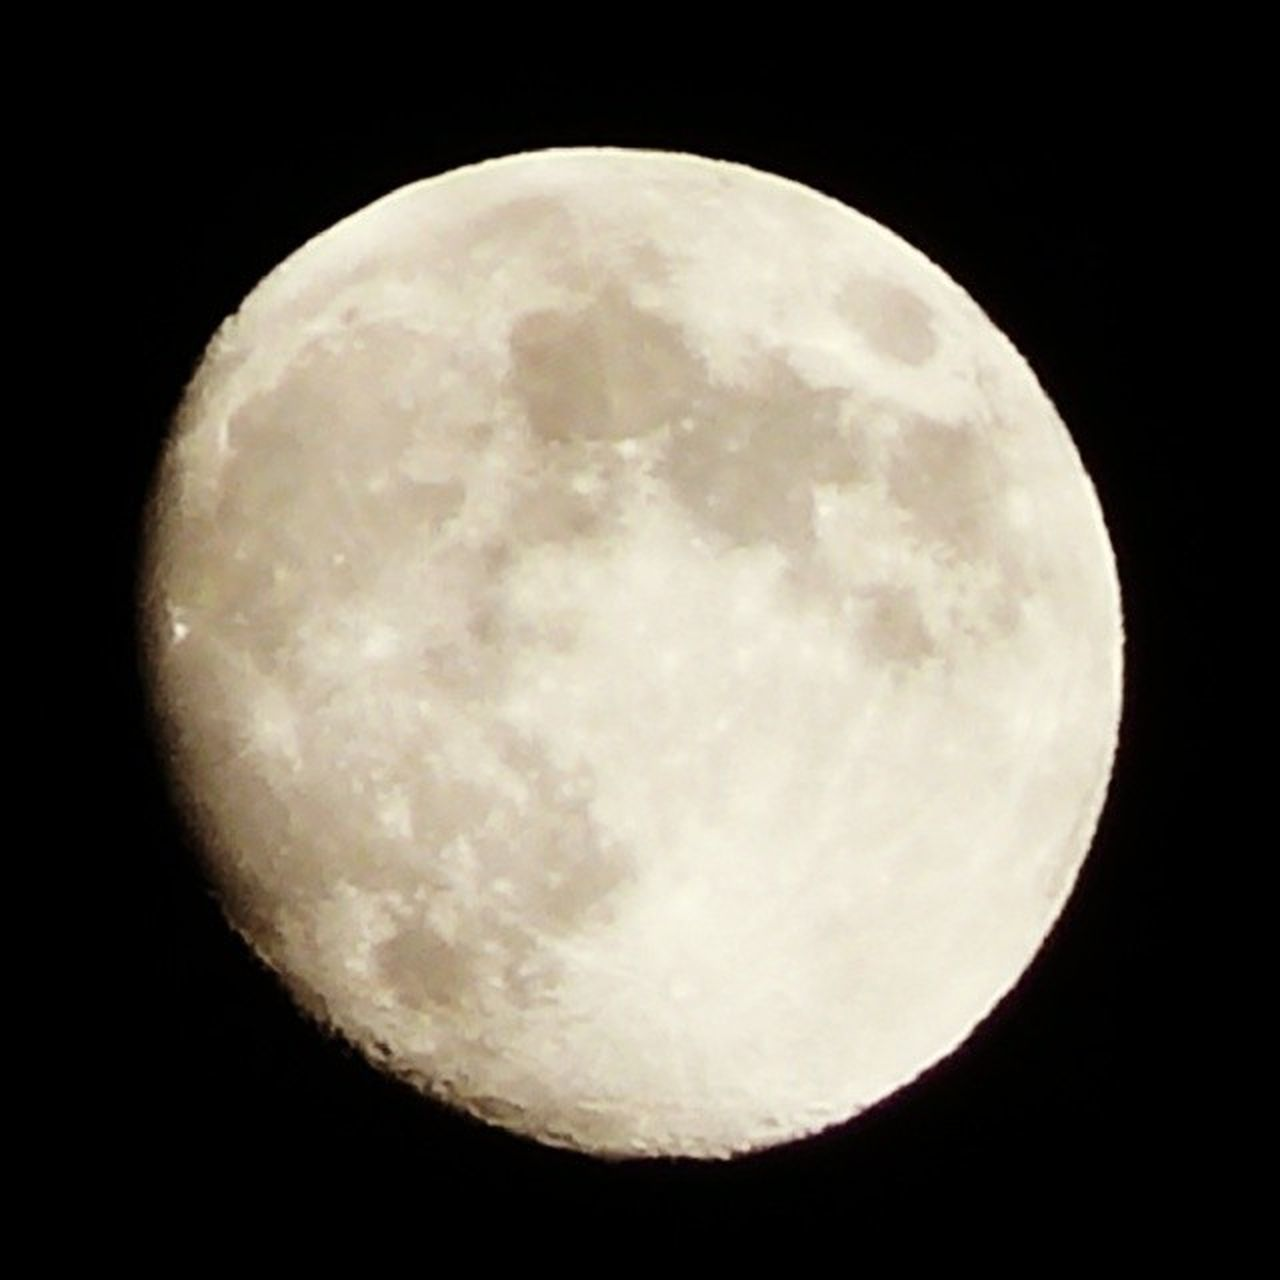 night, moon, planetary moon, astronomy, moon surface, circle, beauty in nature, nature, no people, scenics, tranquility, close-up, space exploration, space, outdoors, sky, illuminated